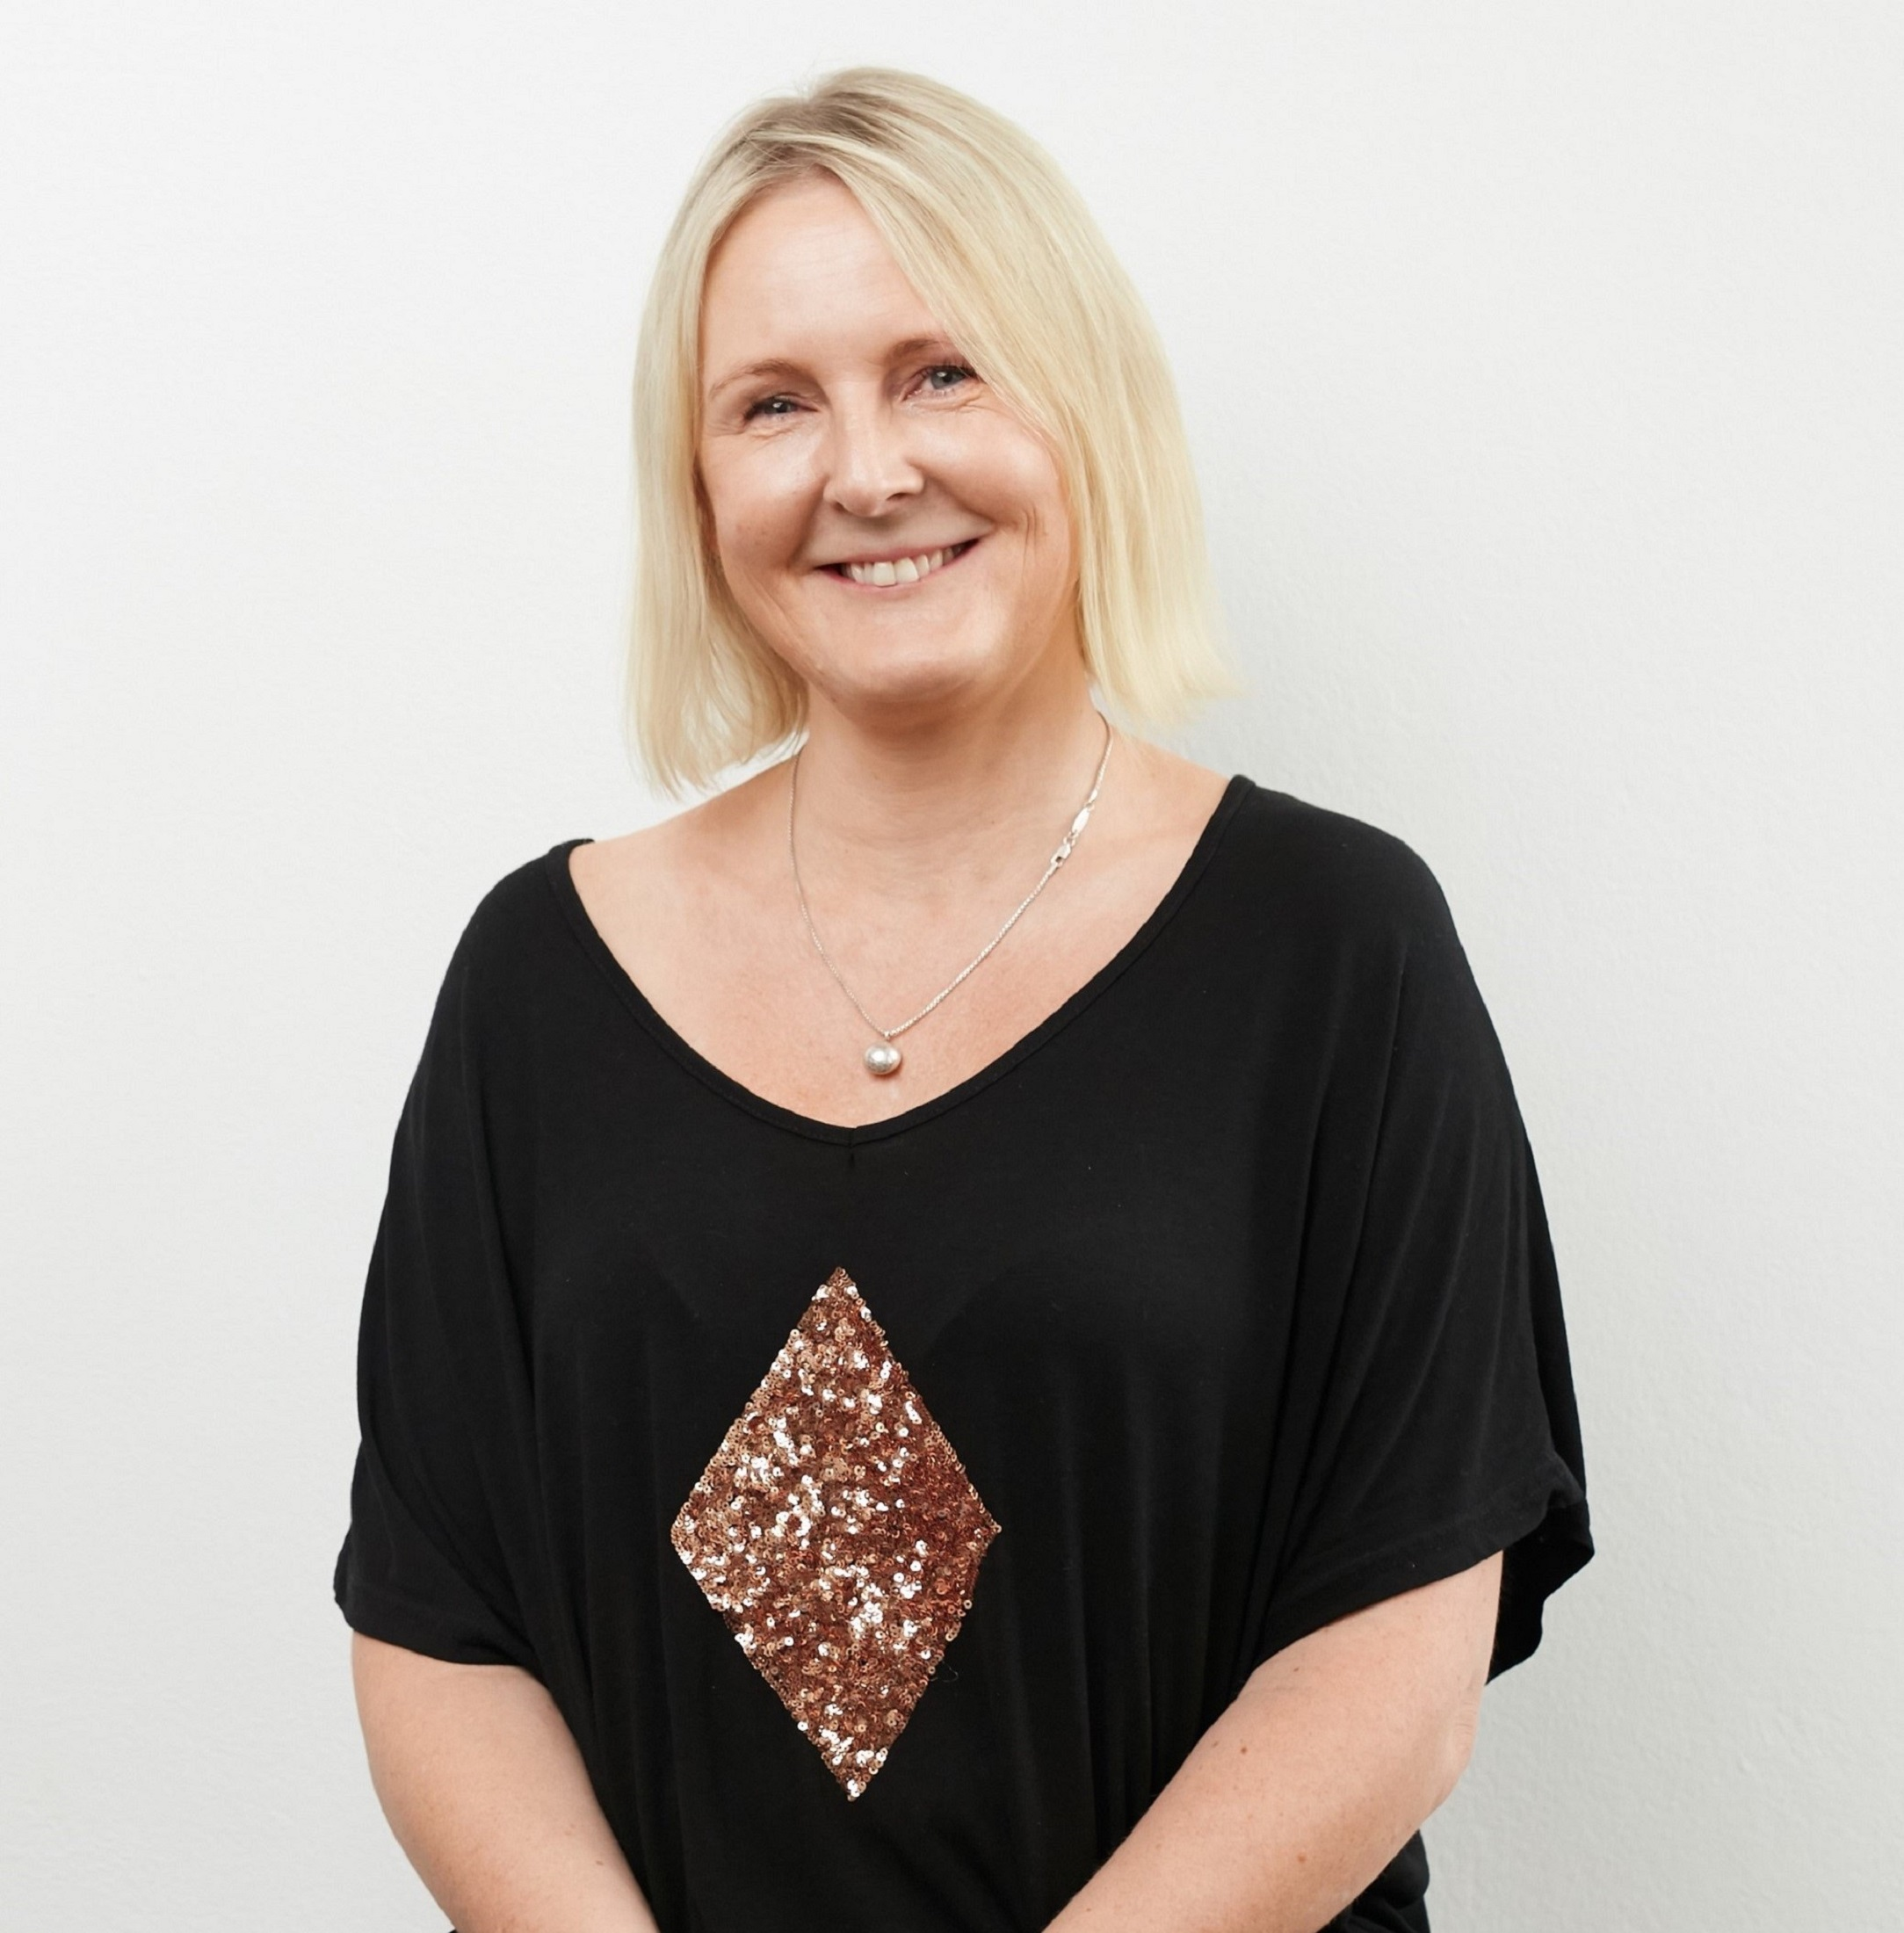 Nicola Johnson - Project ManagerLinked In